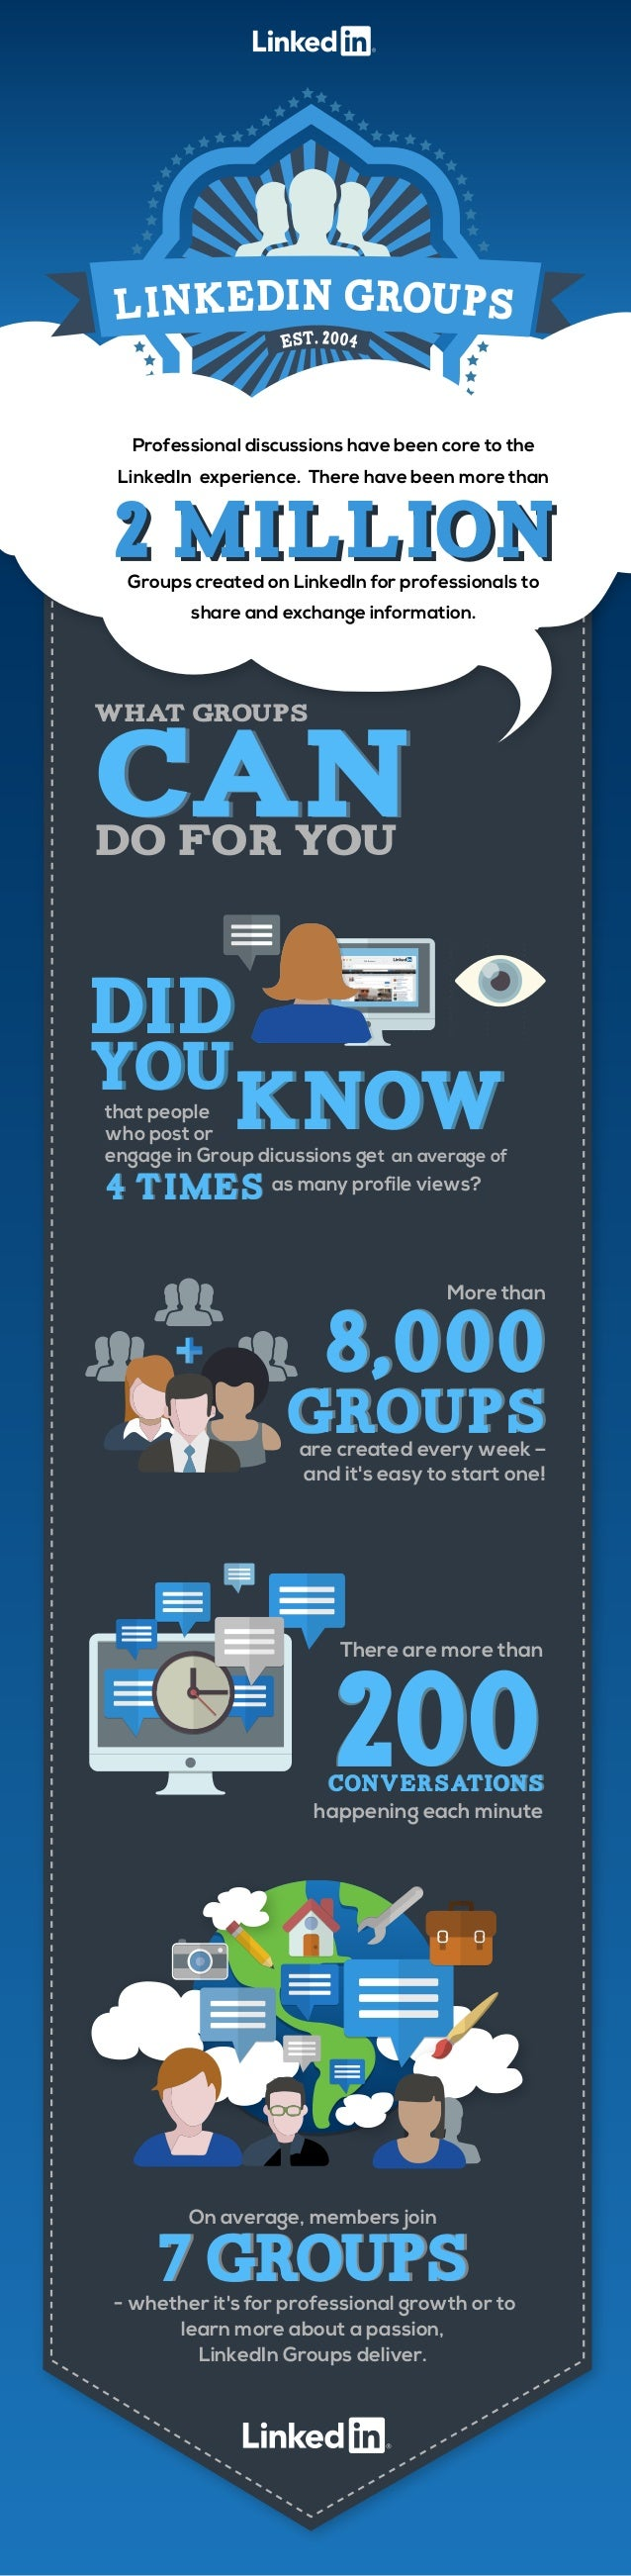 7 Groups On average, members join 7 Groups- whether it's for professional growth or to learn more about a passion, LinkedI...